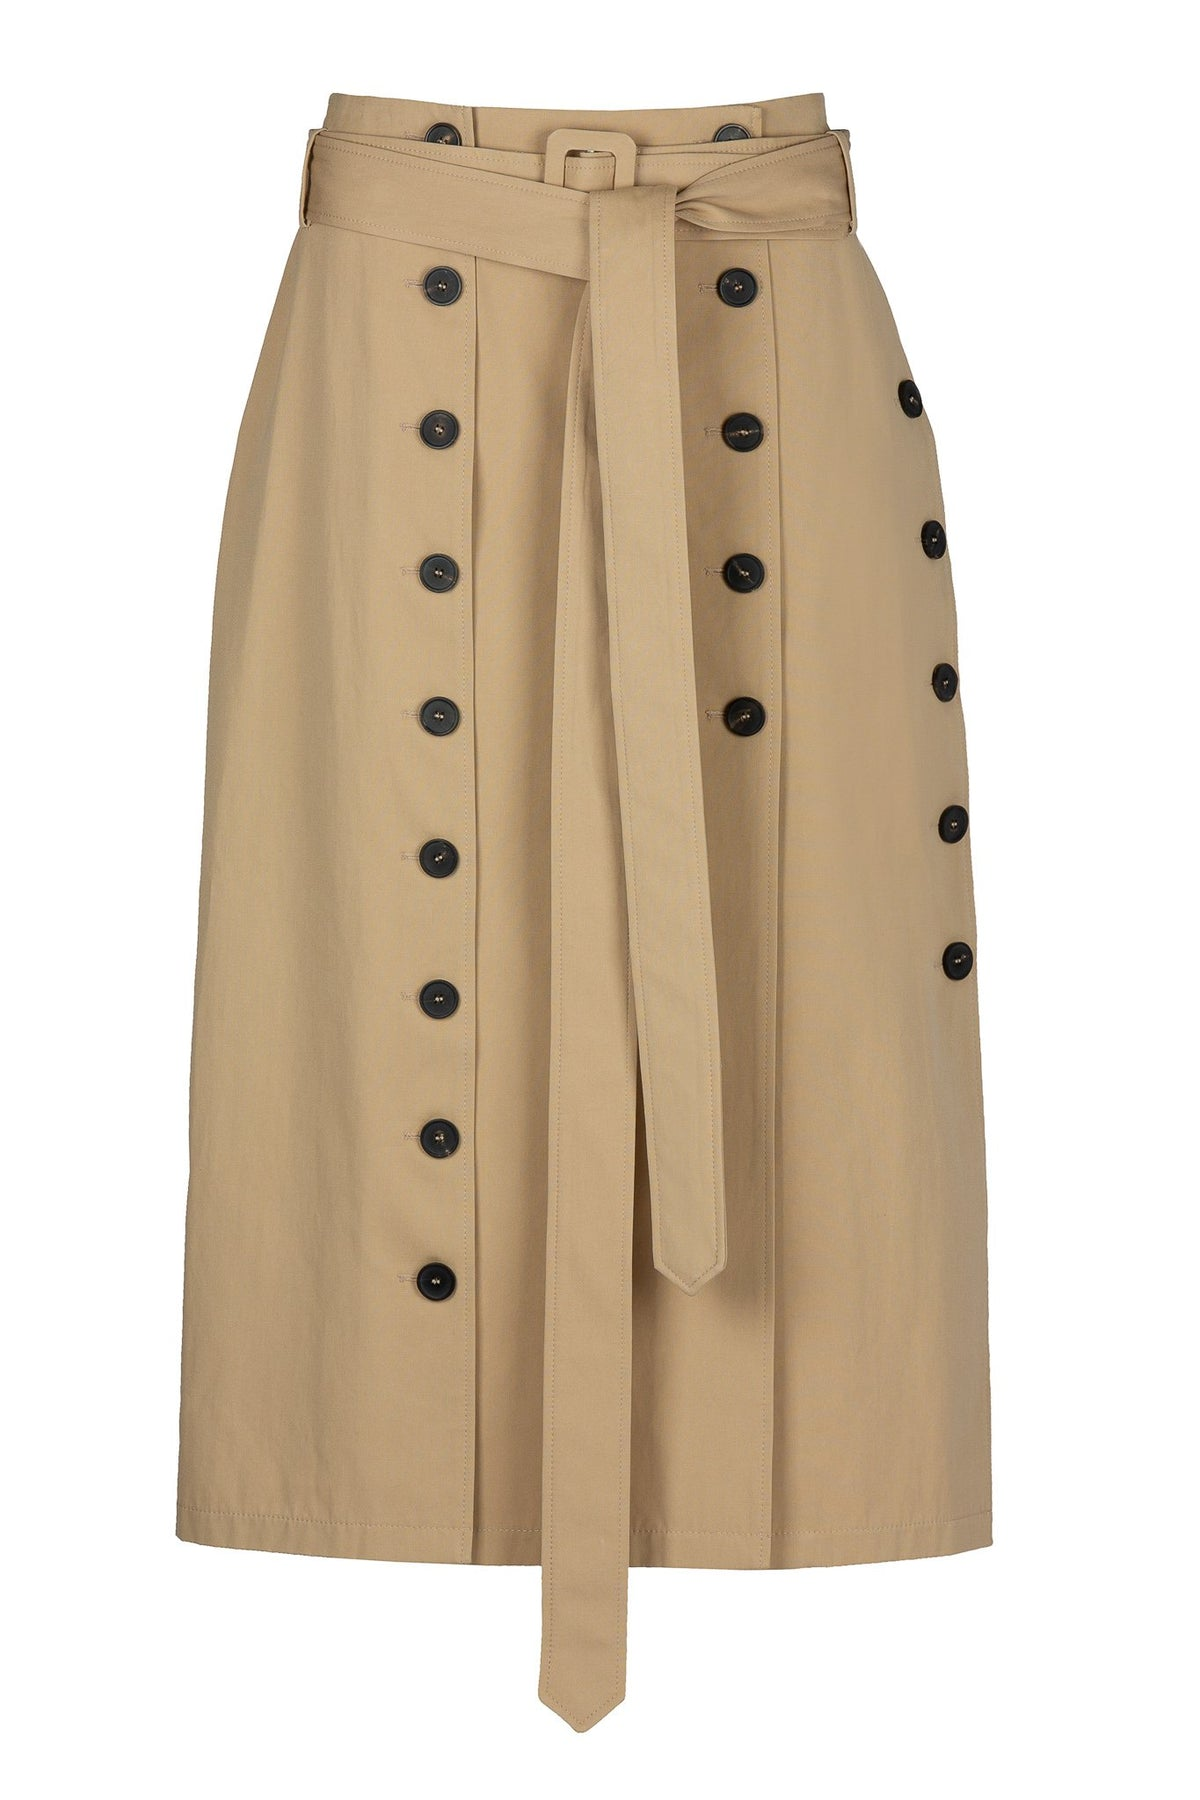 Panelled | Skirt | Camel